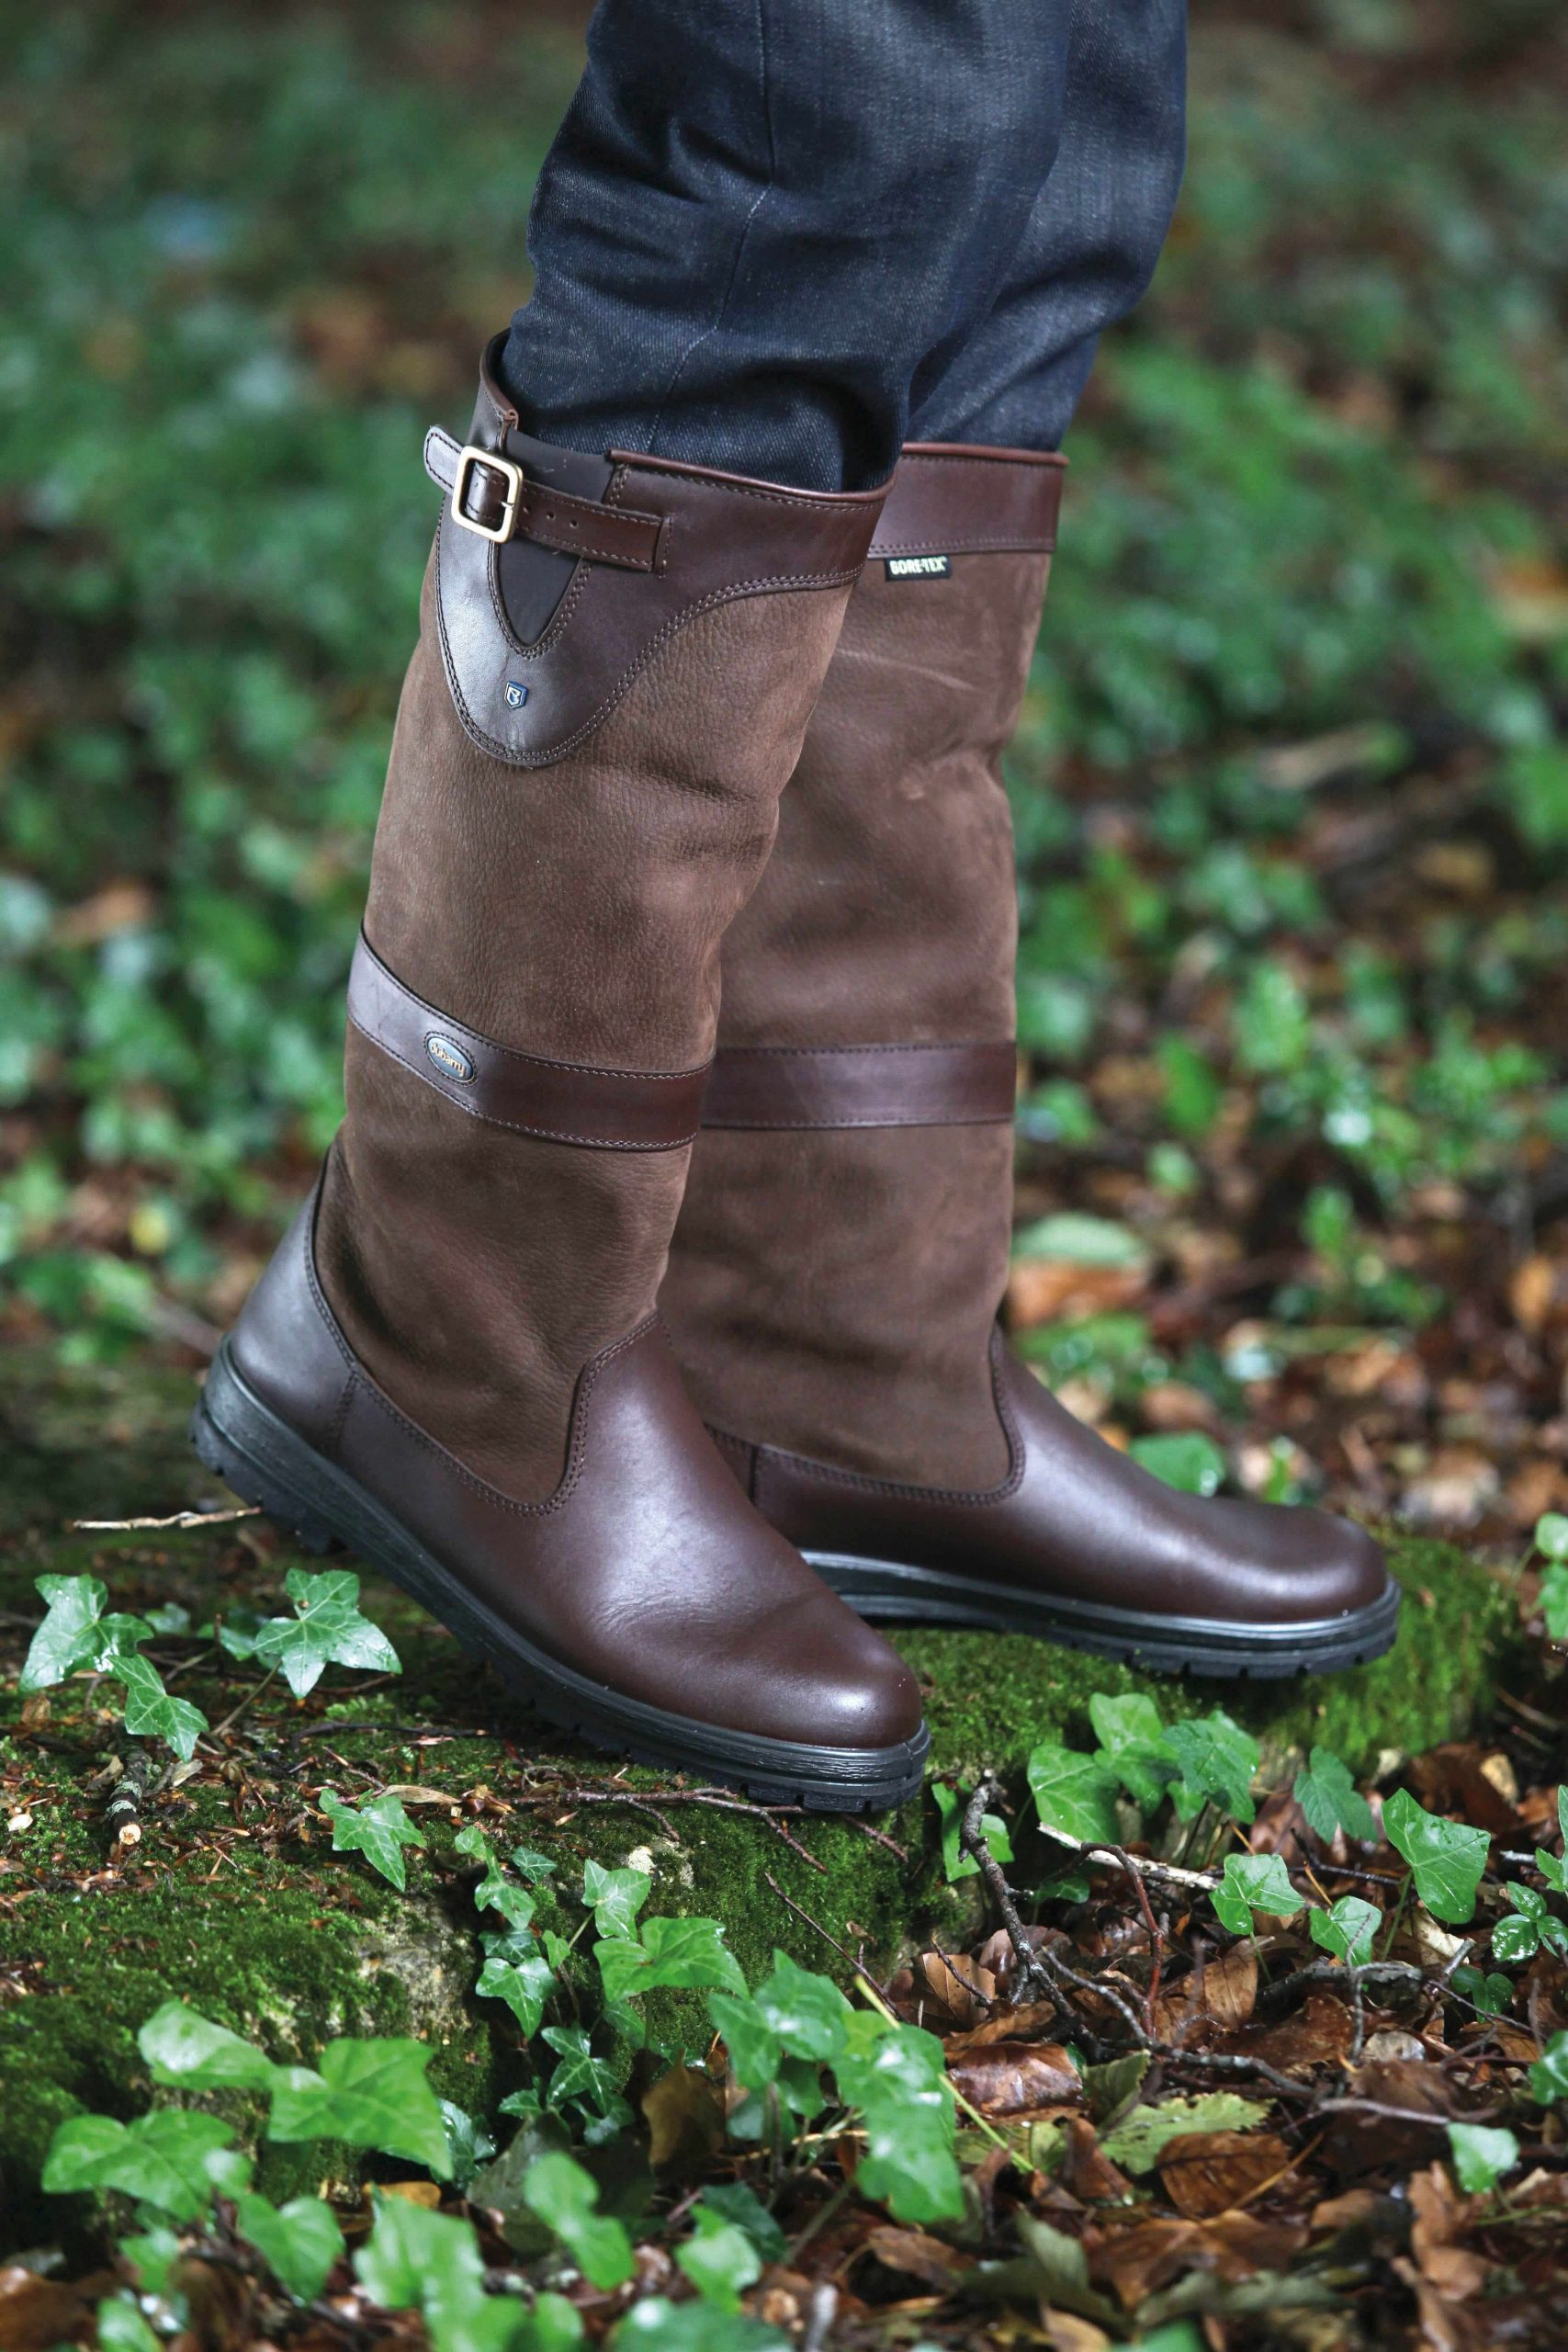 dubarry boots side view